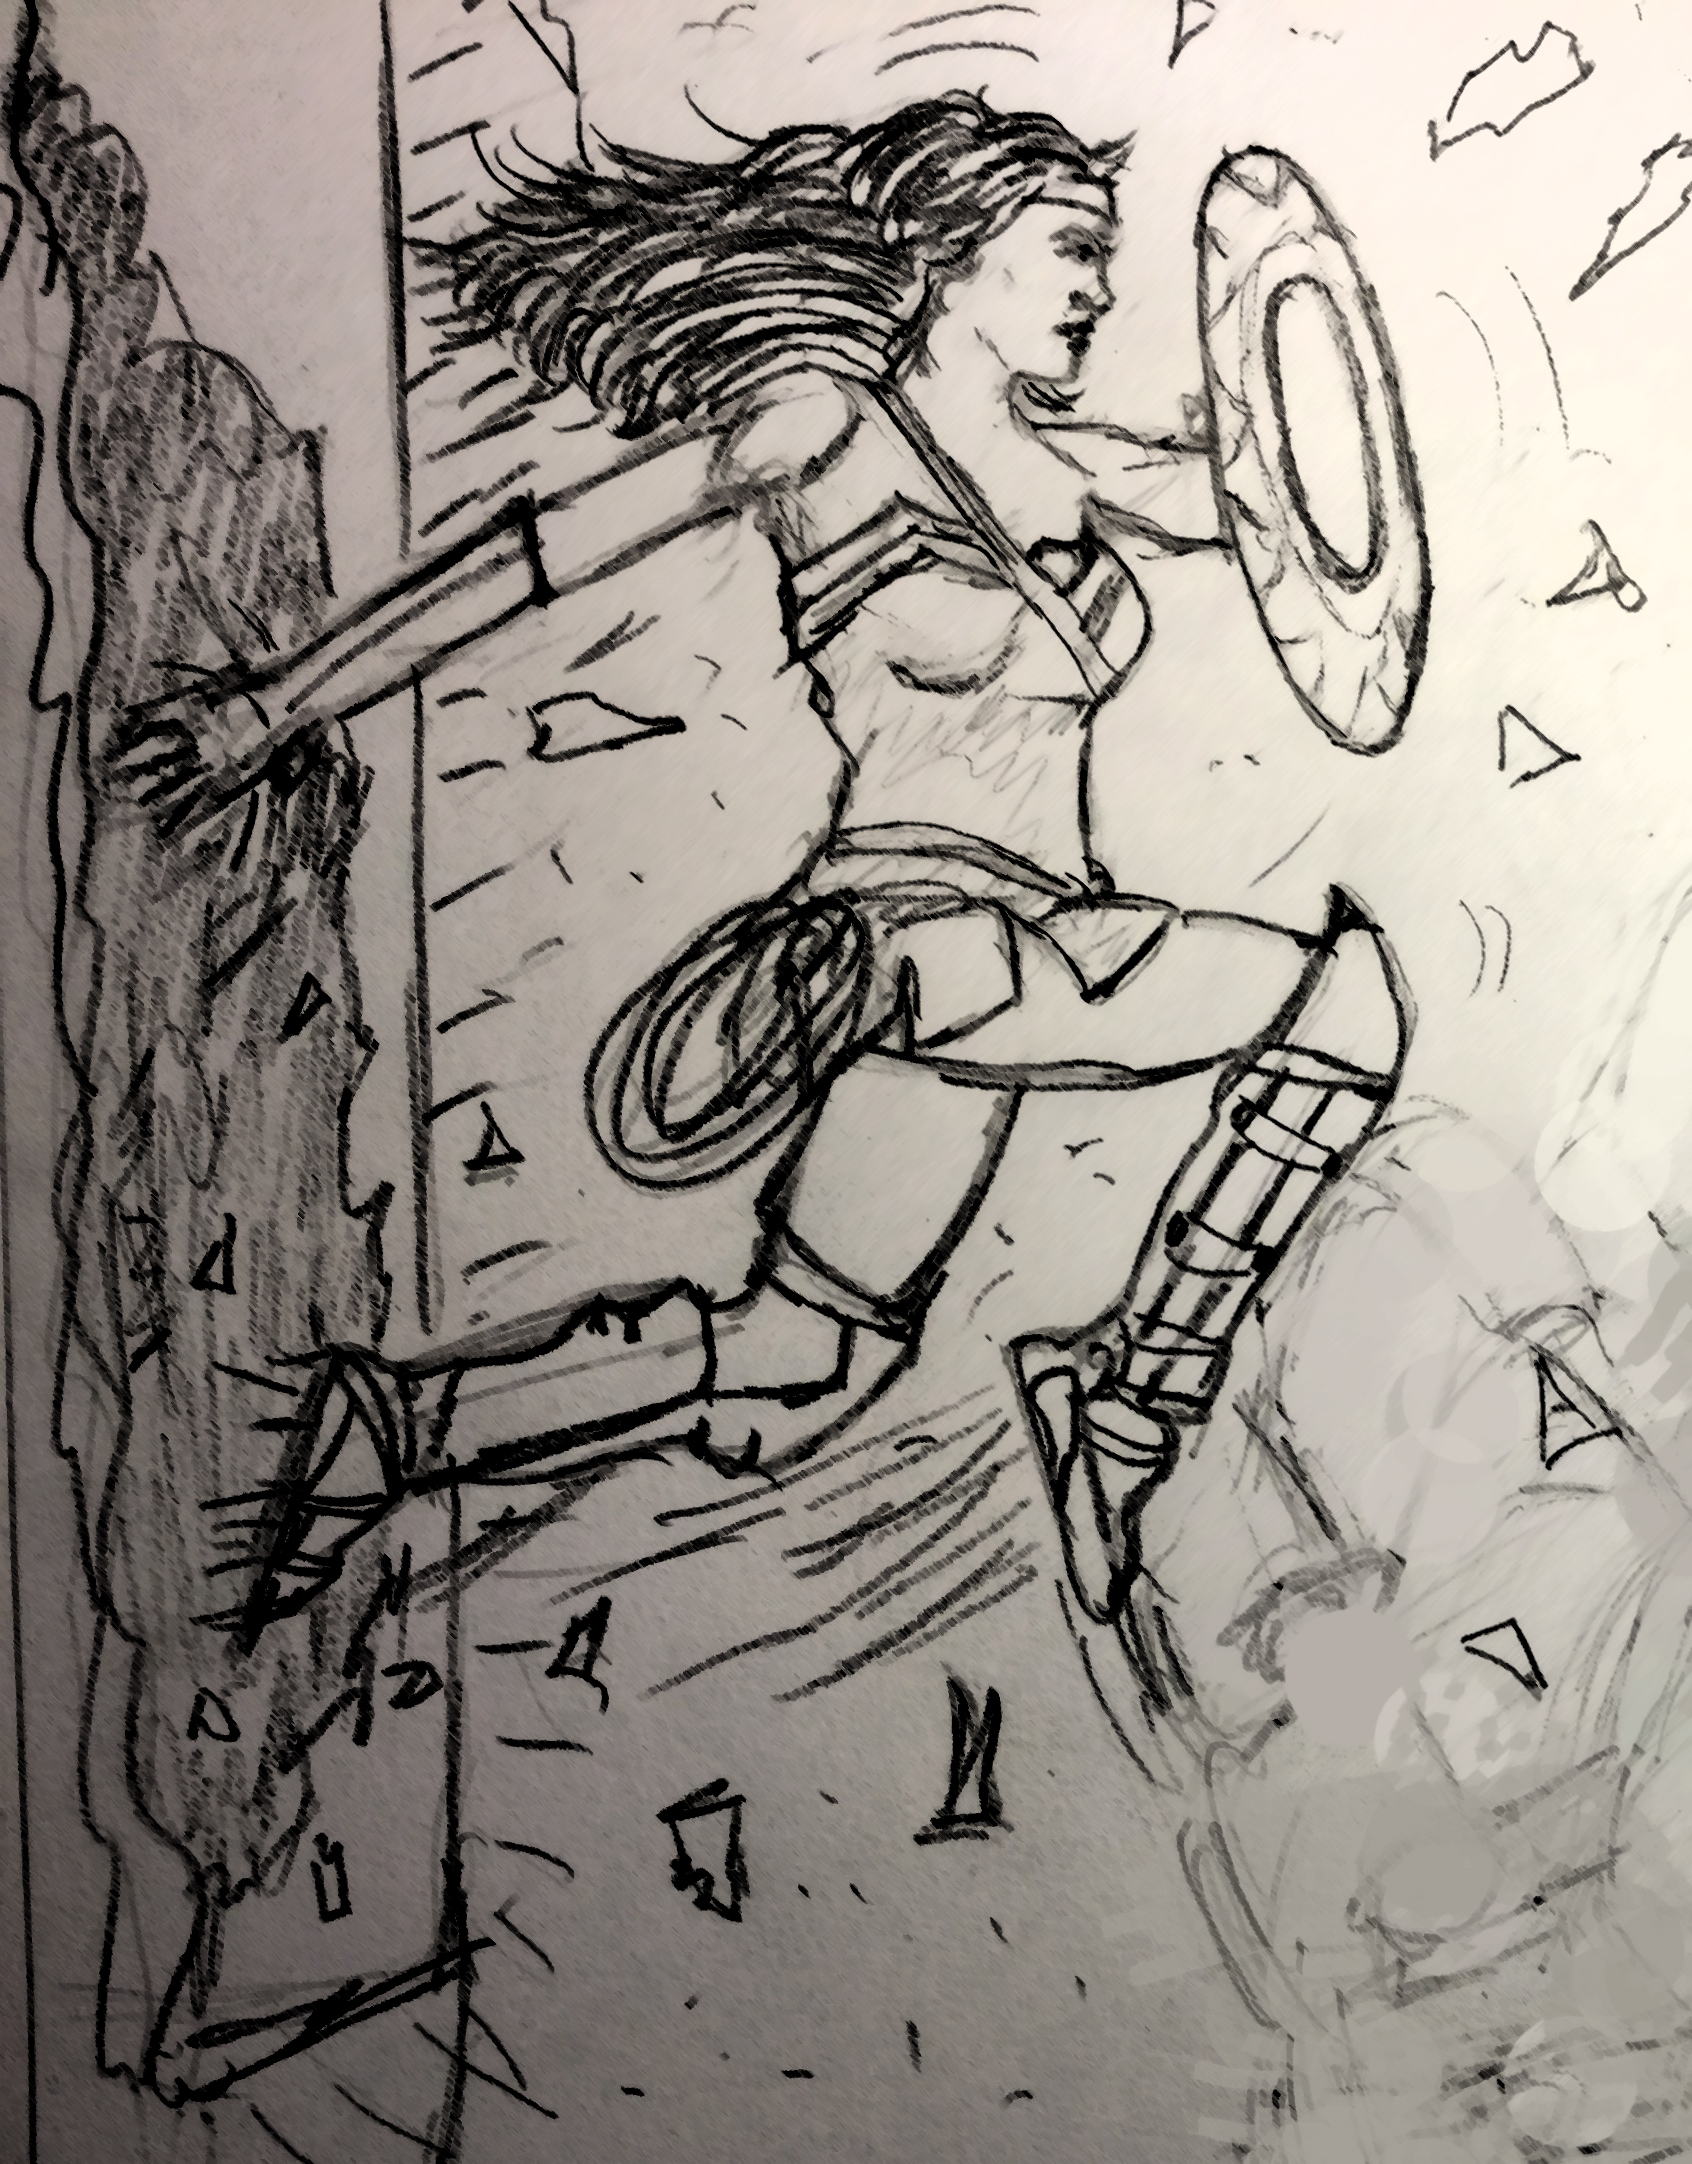 A sketch of Wonder Woman bursting from a wall with her shield